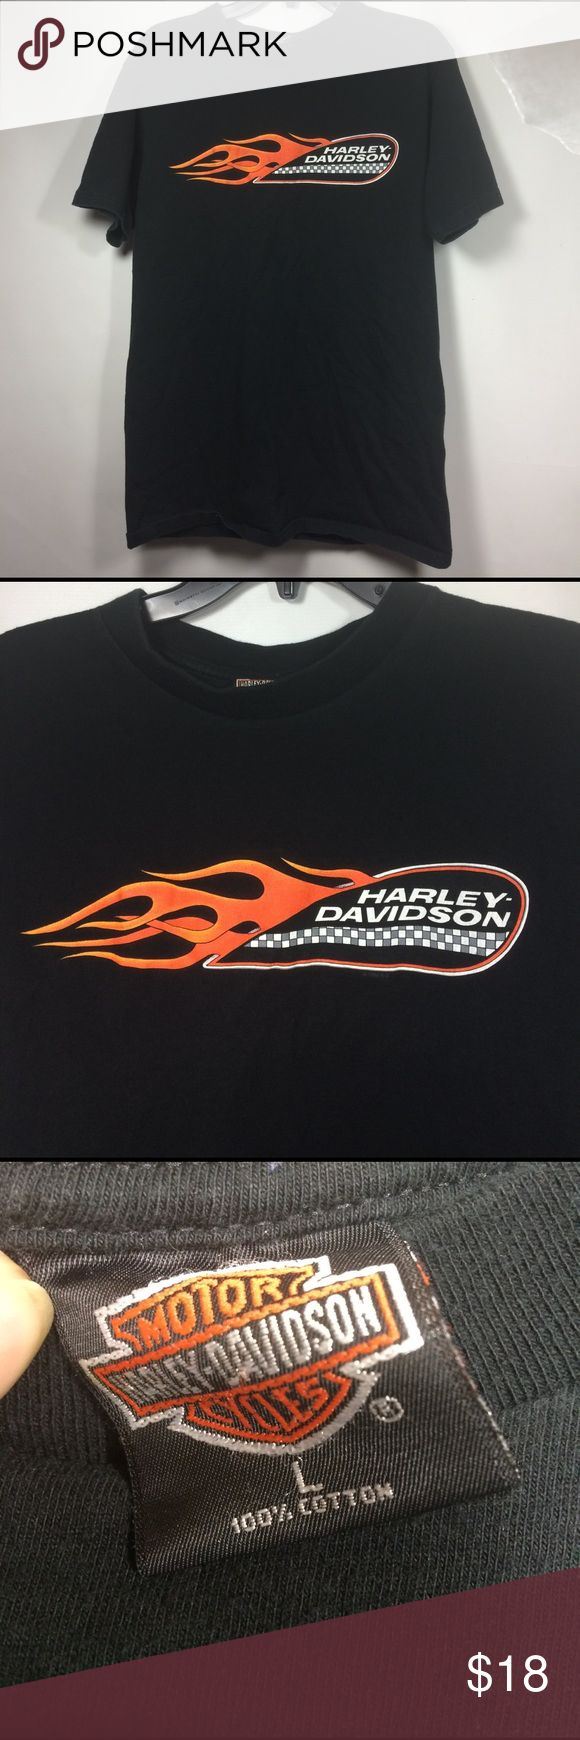 Men's size large Harley Davidson t shirt Men's size large Harley Davidson t shirt Alamo City, San Antonio Texas , great condition Harley-Davidson Shirts Tees - Short Sleeve